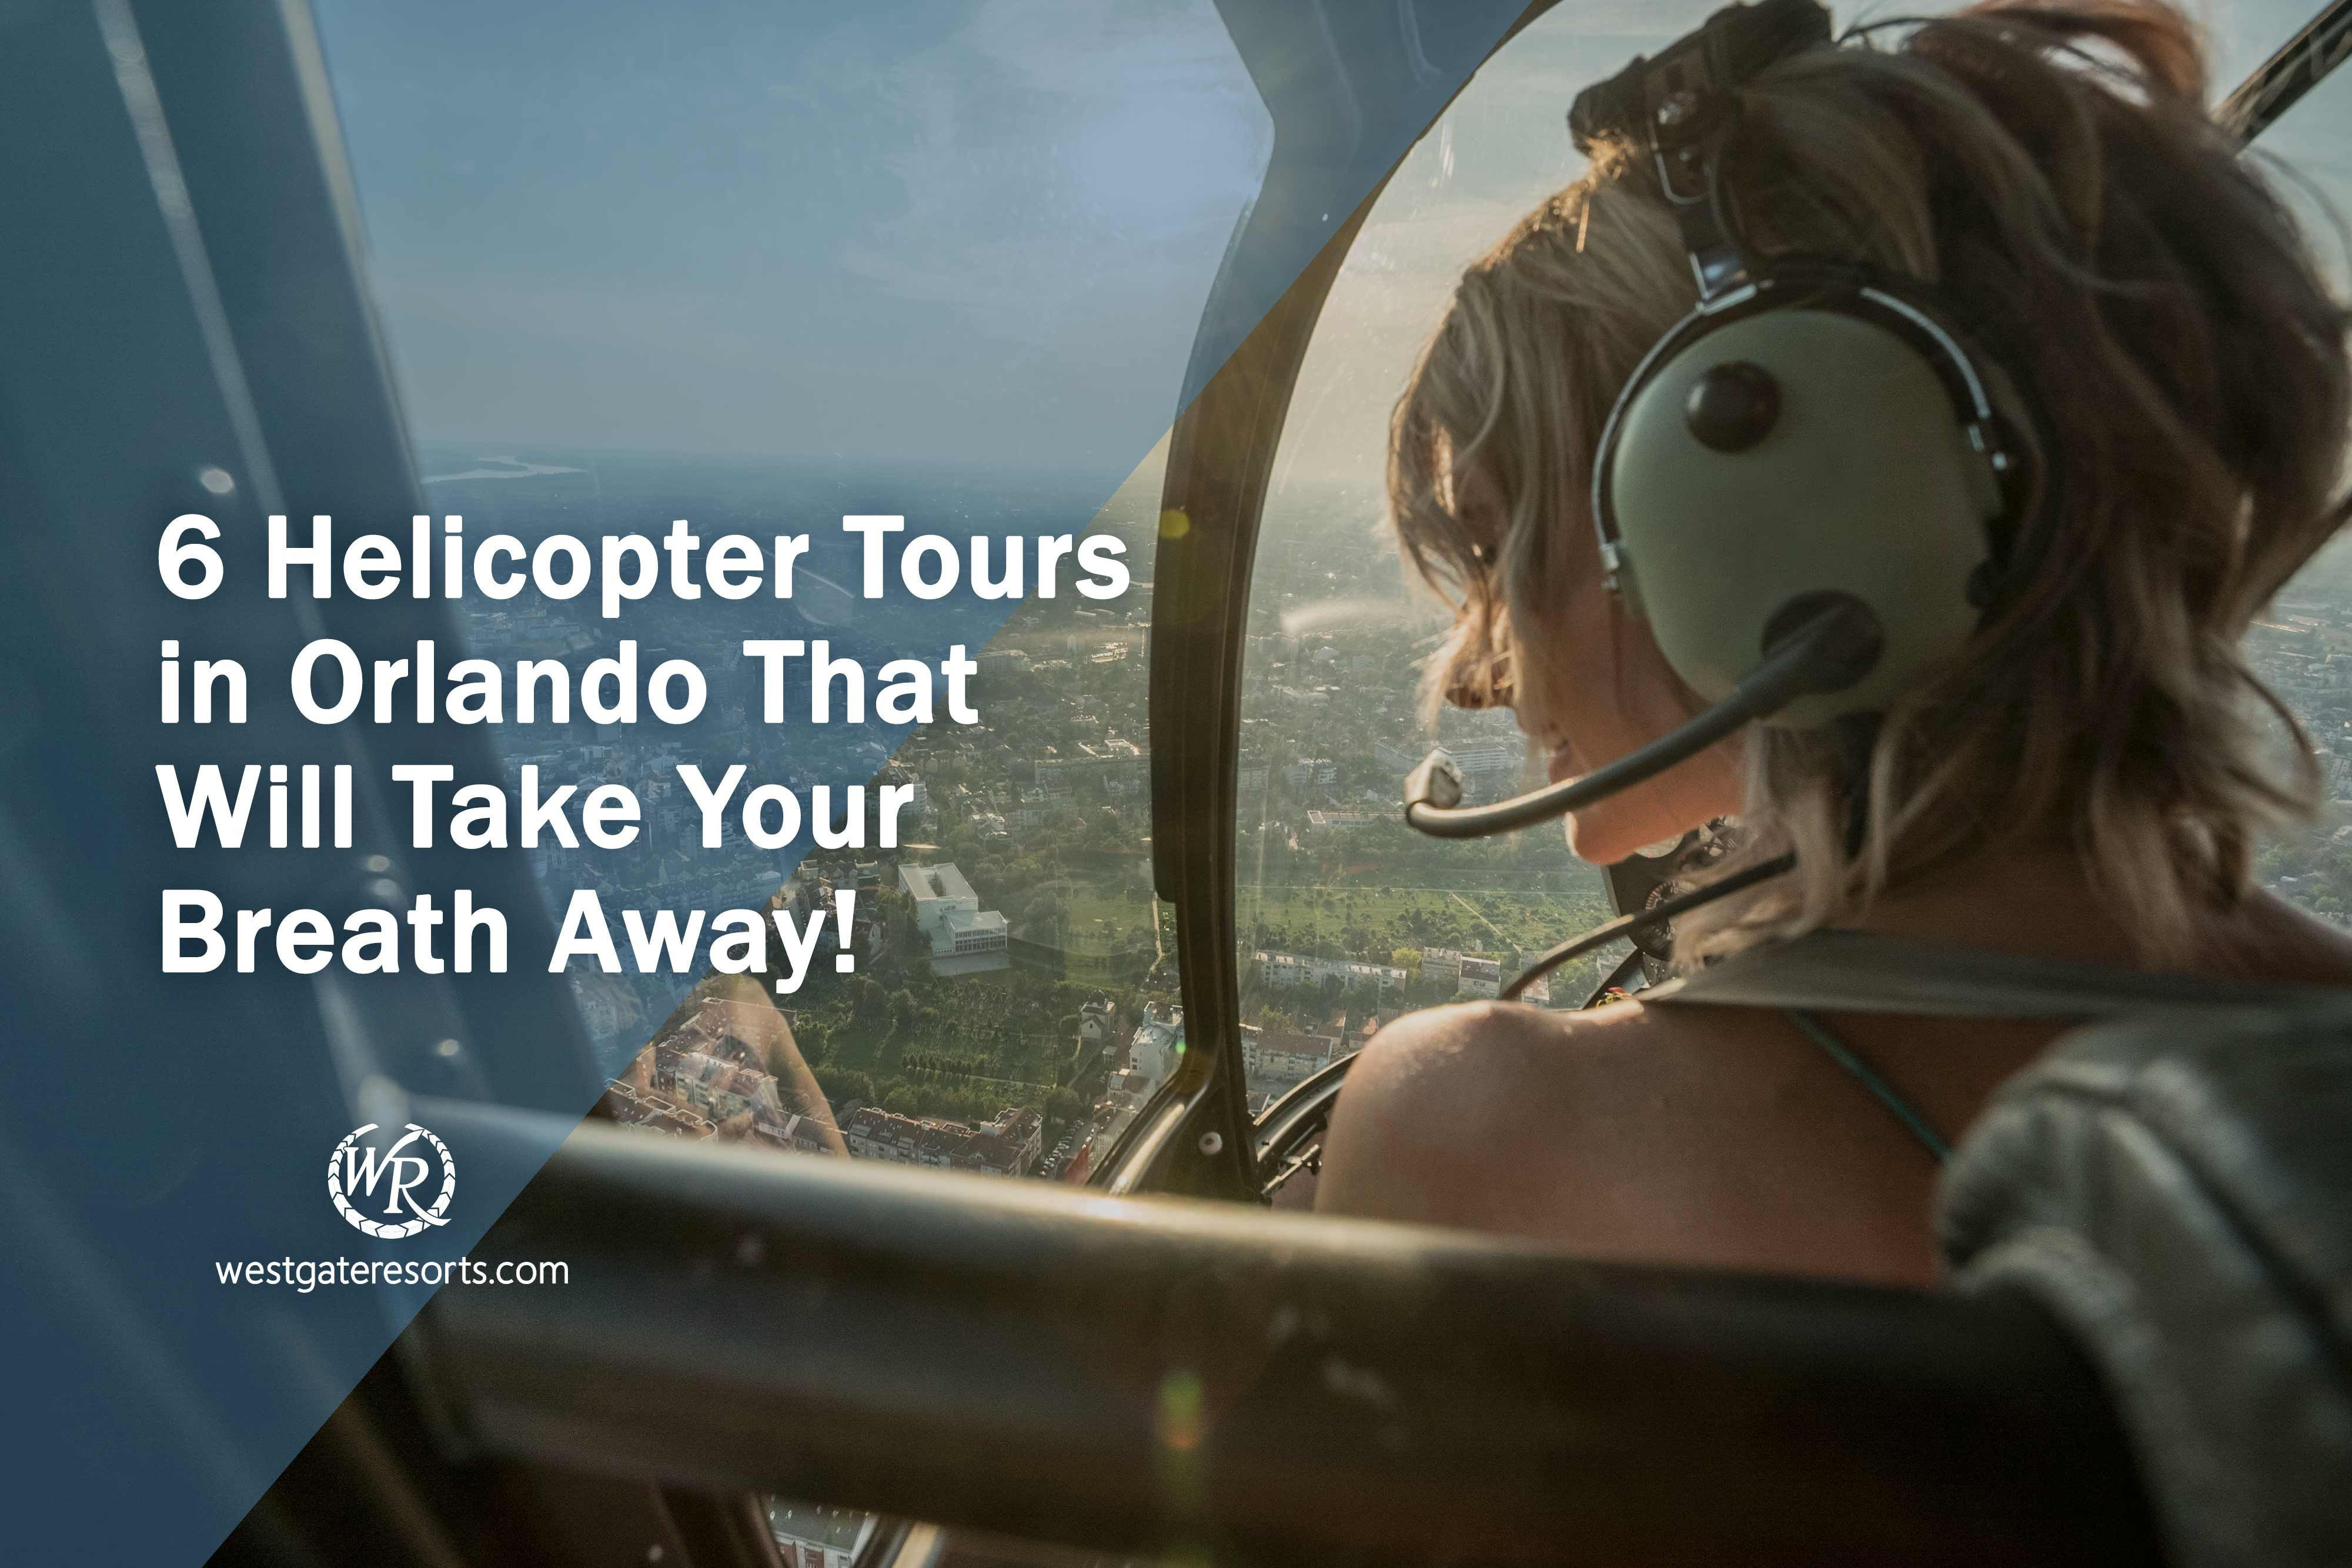 6 Helicopter Tours in Orlando That Will Take Your Breath Away!